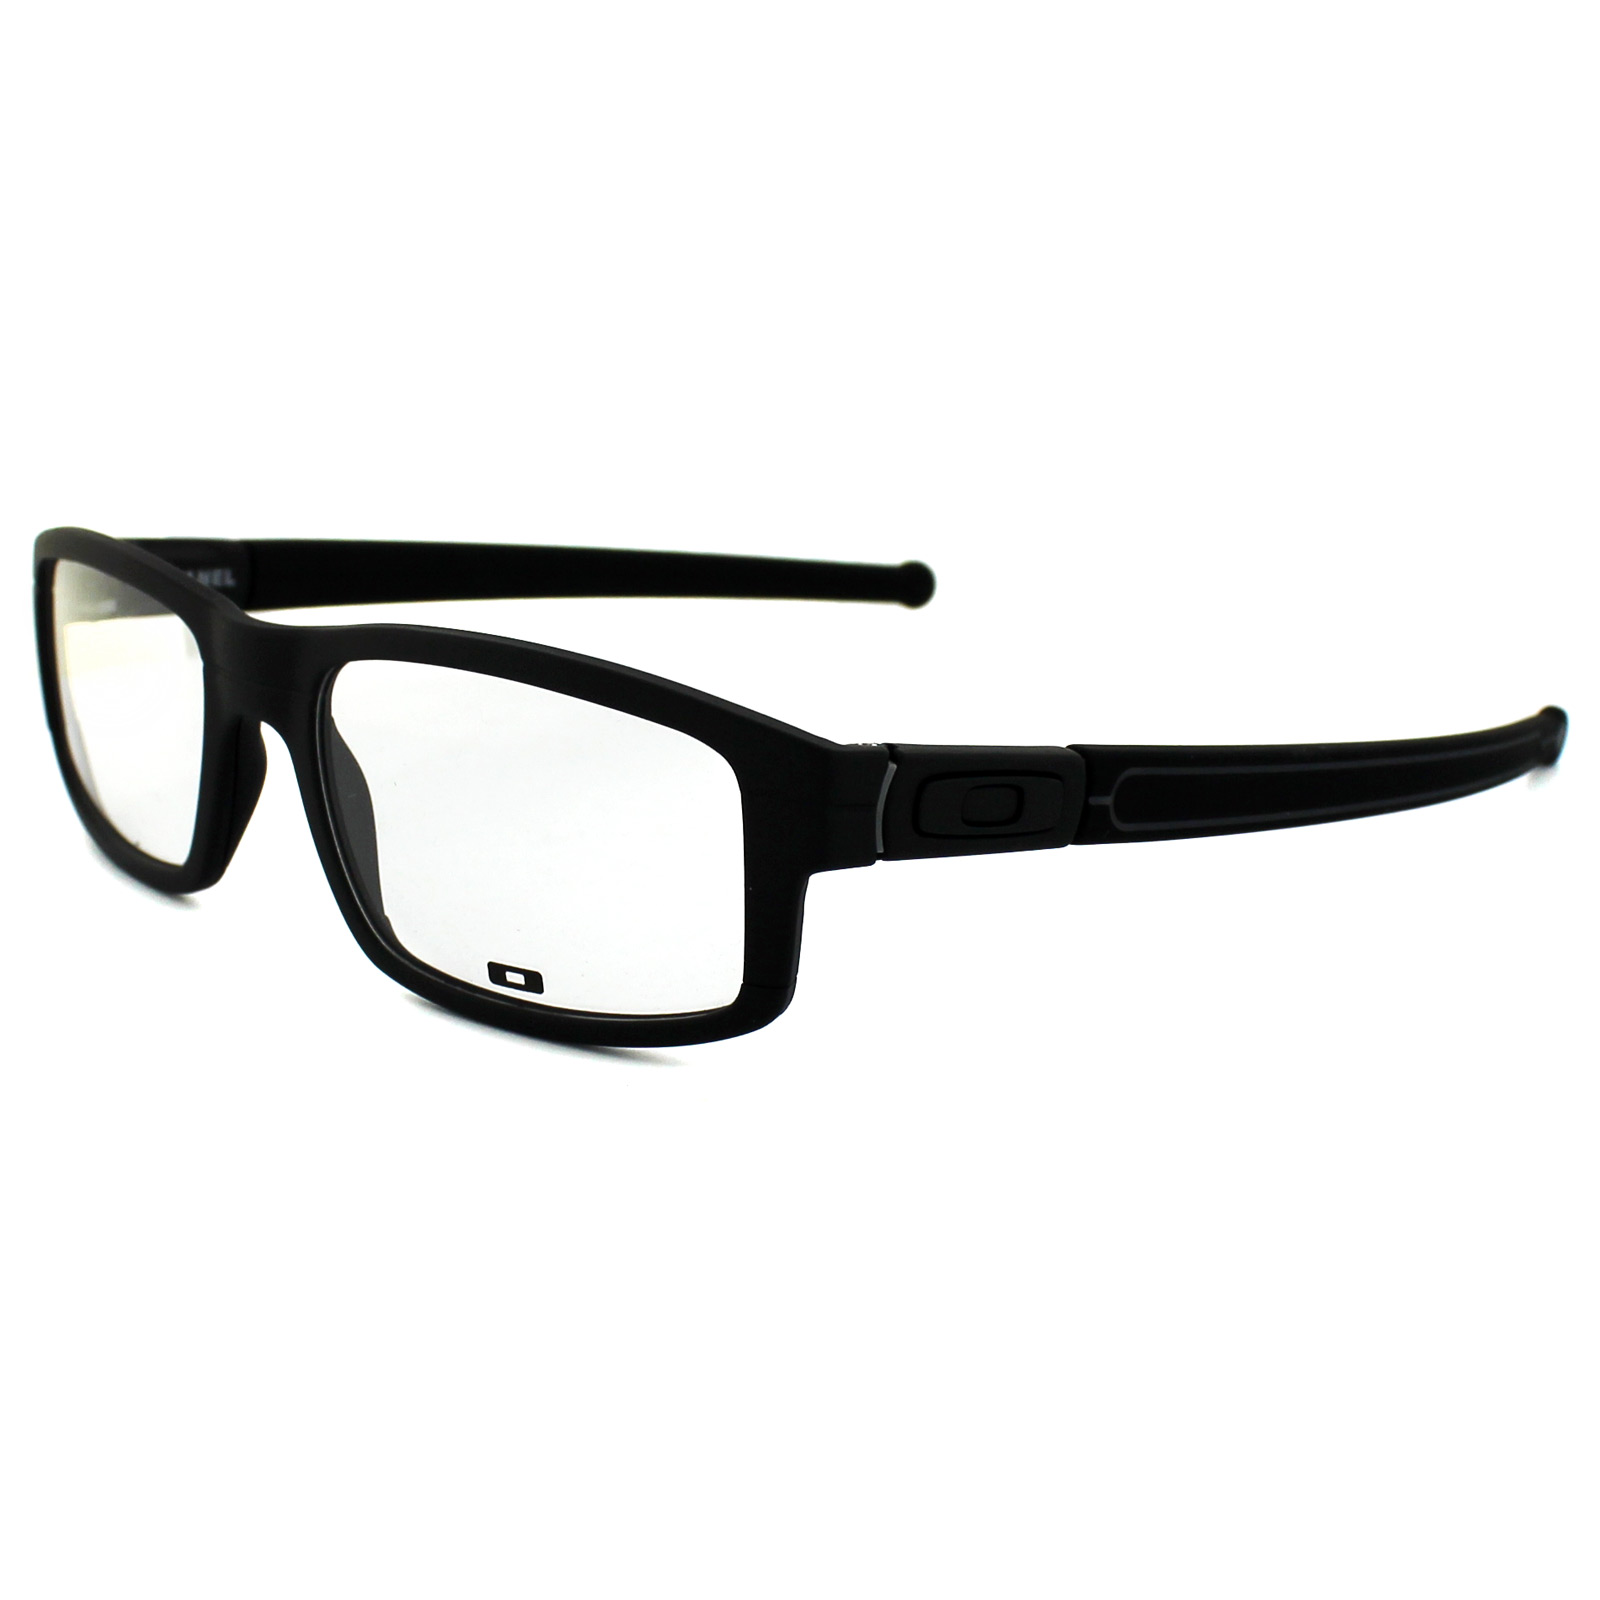 sentinel oakley glasses frames panel 3153 01 black